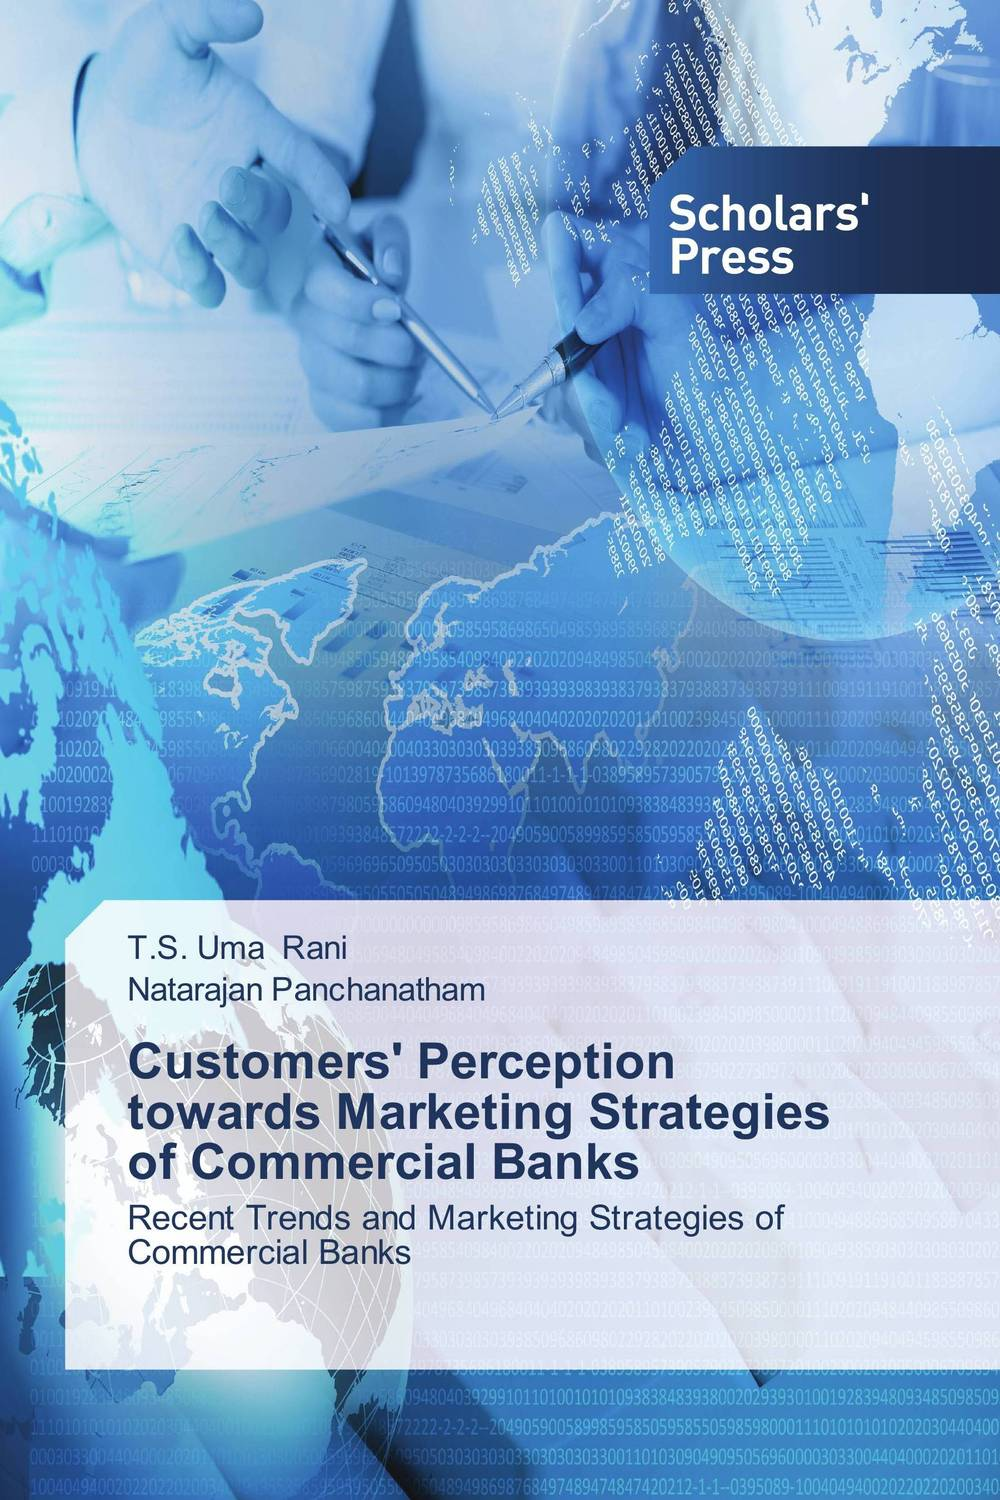 Customers' Perception towards Marketing Strategies of Commercial Banks steven bragg m cost reduction analysis tools and strategies